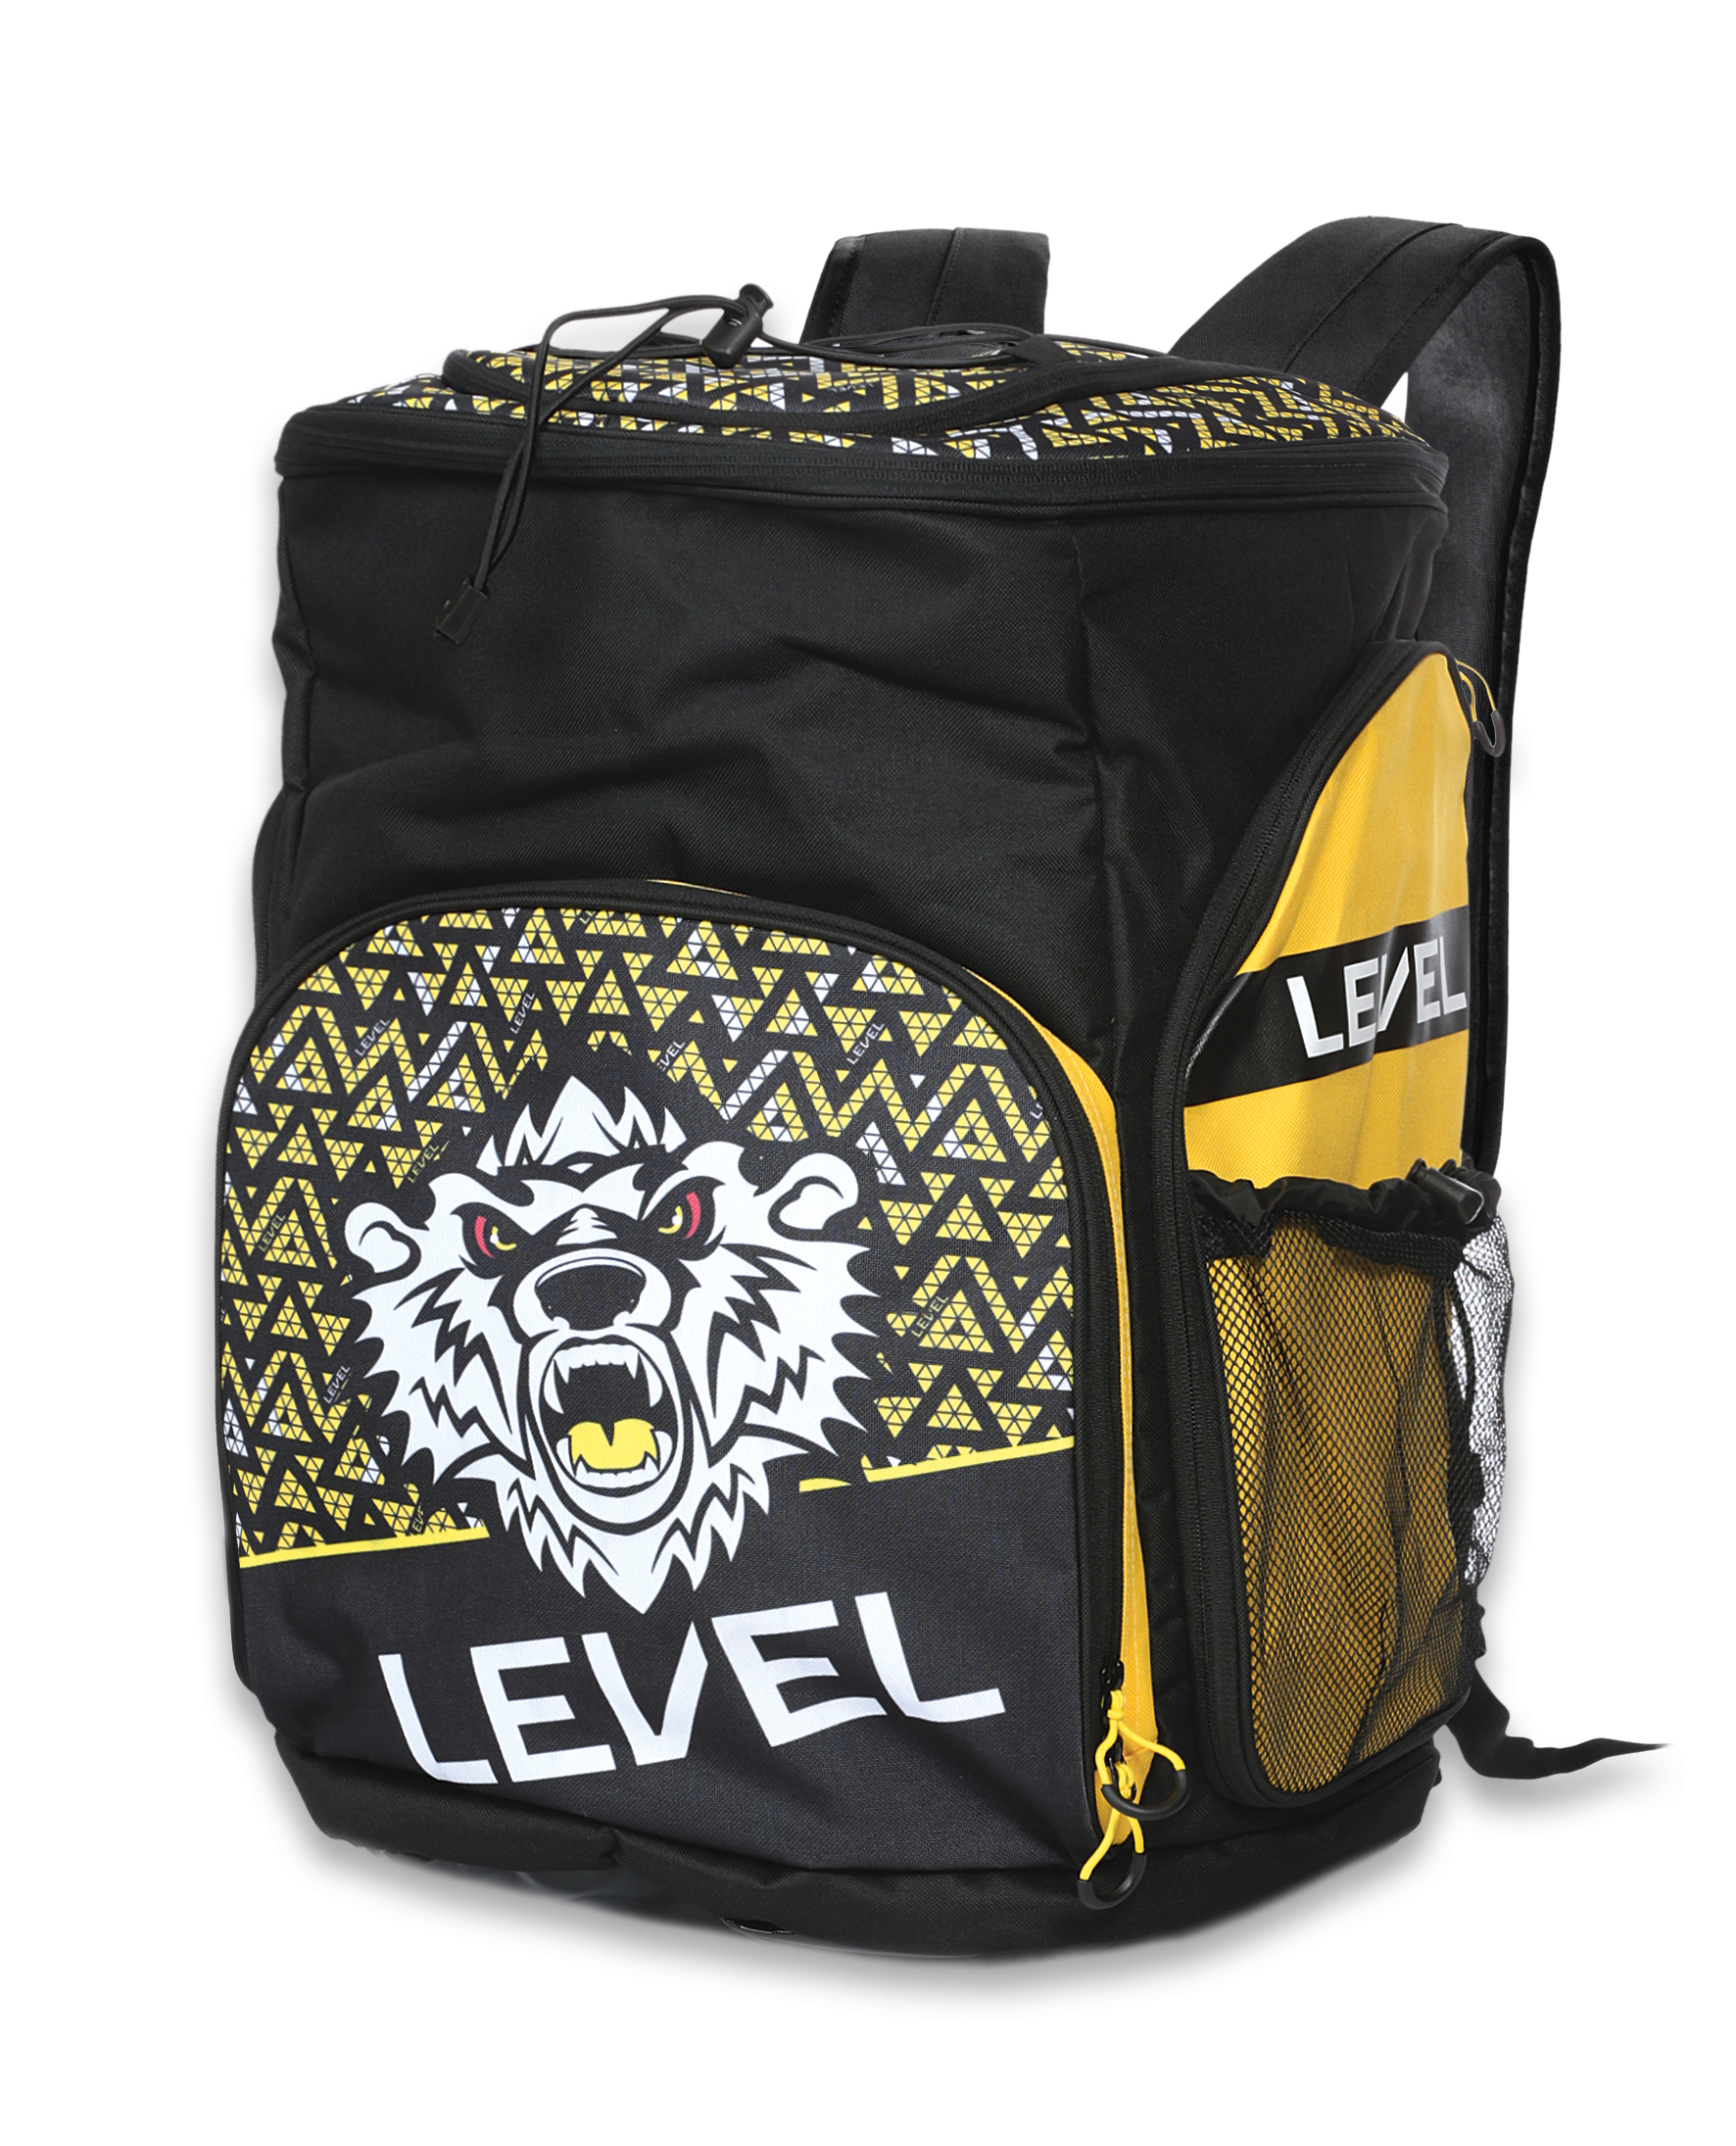 7522AS_47_backpack_ski_team_pro_black_yellow